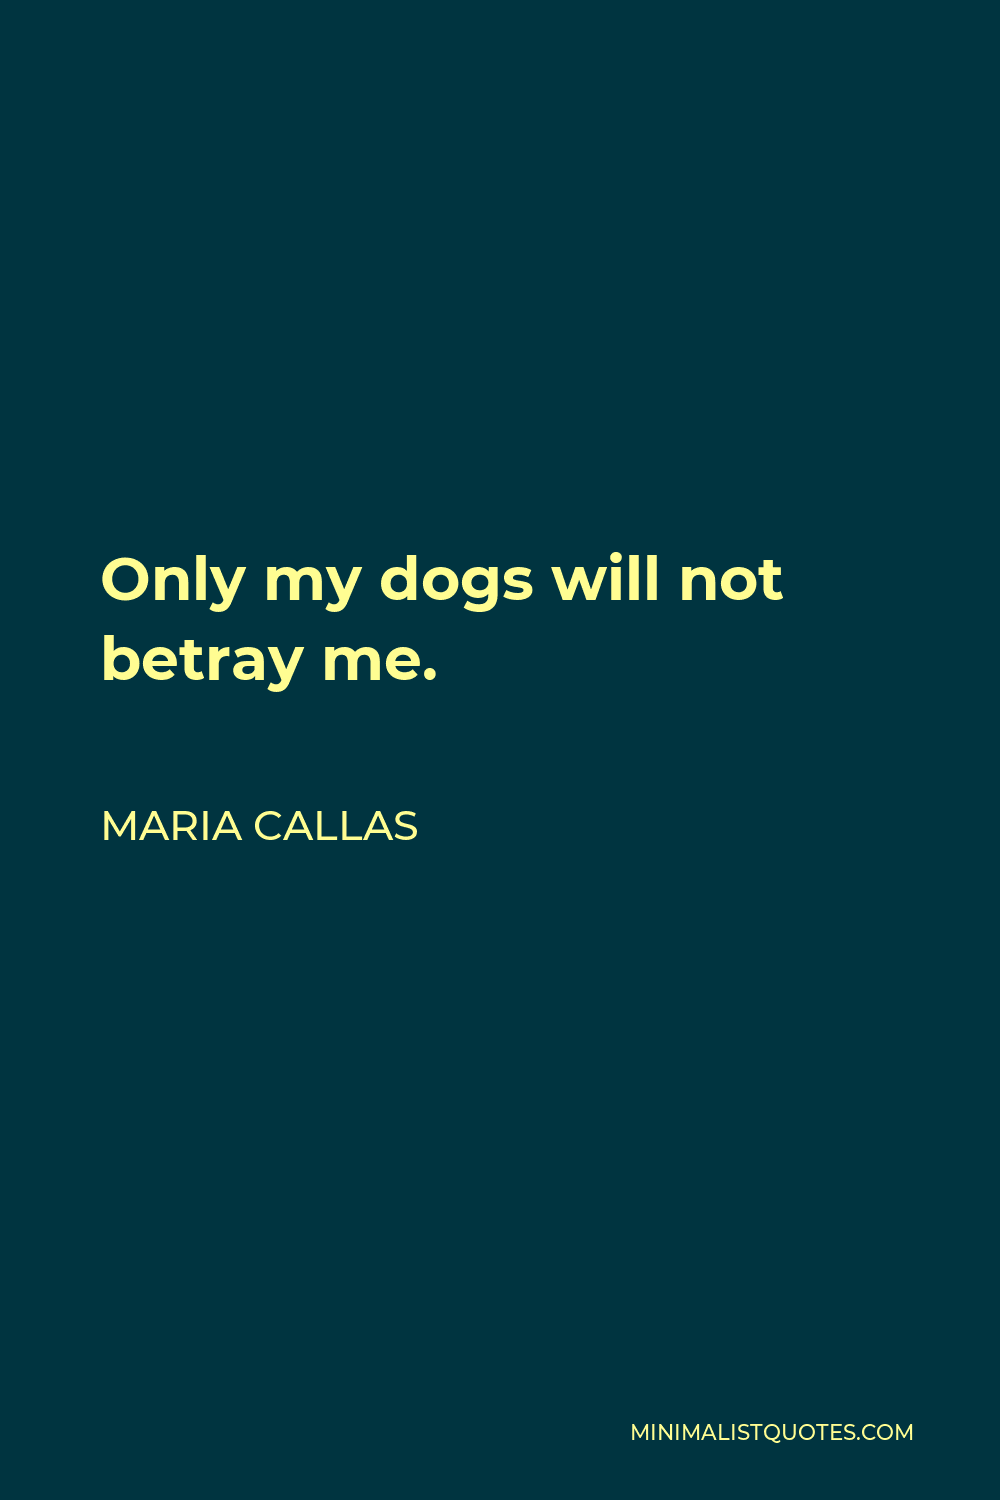 Maria Callas Quote - Only my dogs will not betray me.